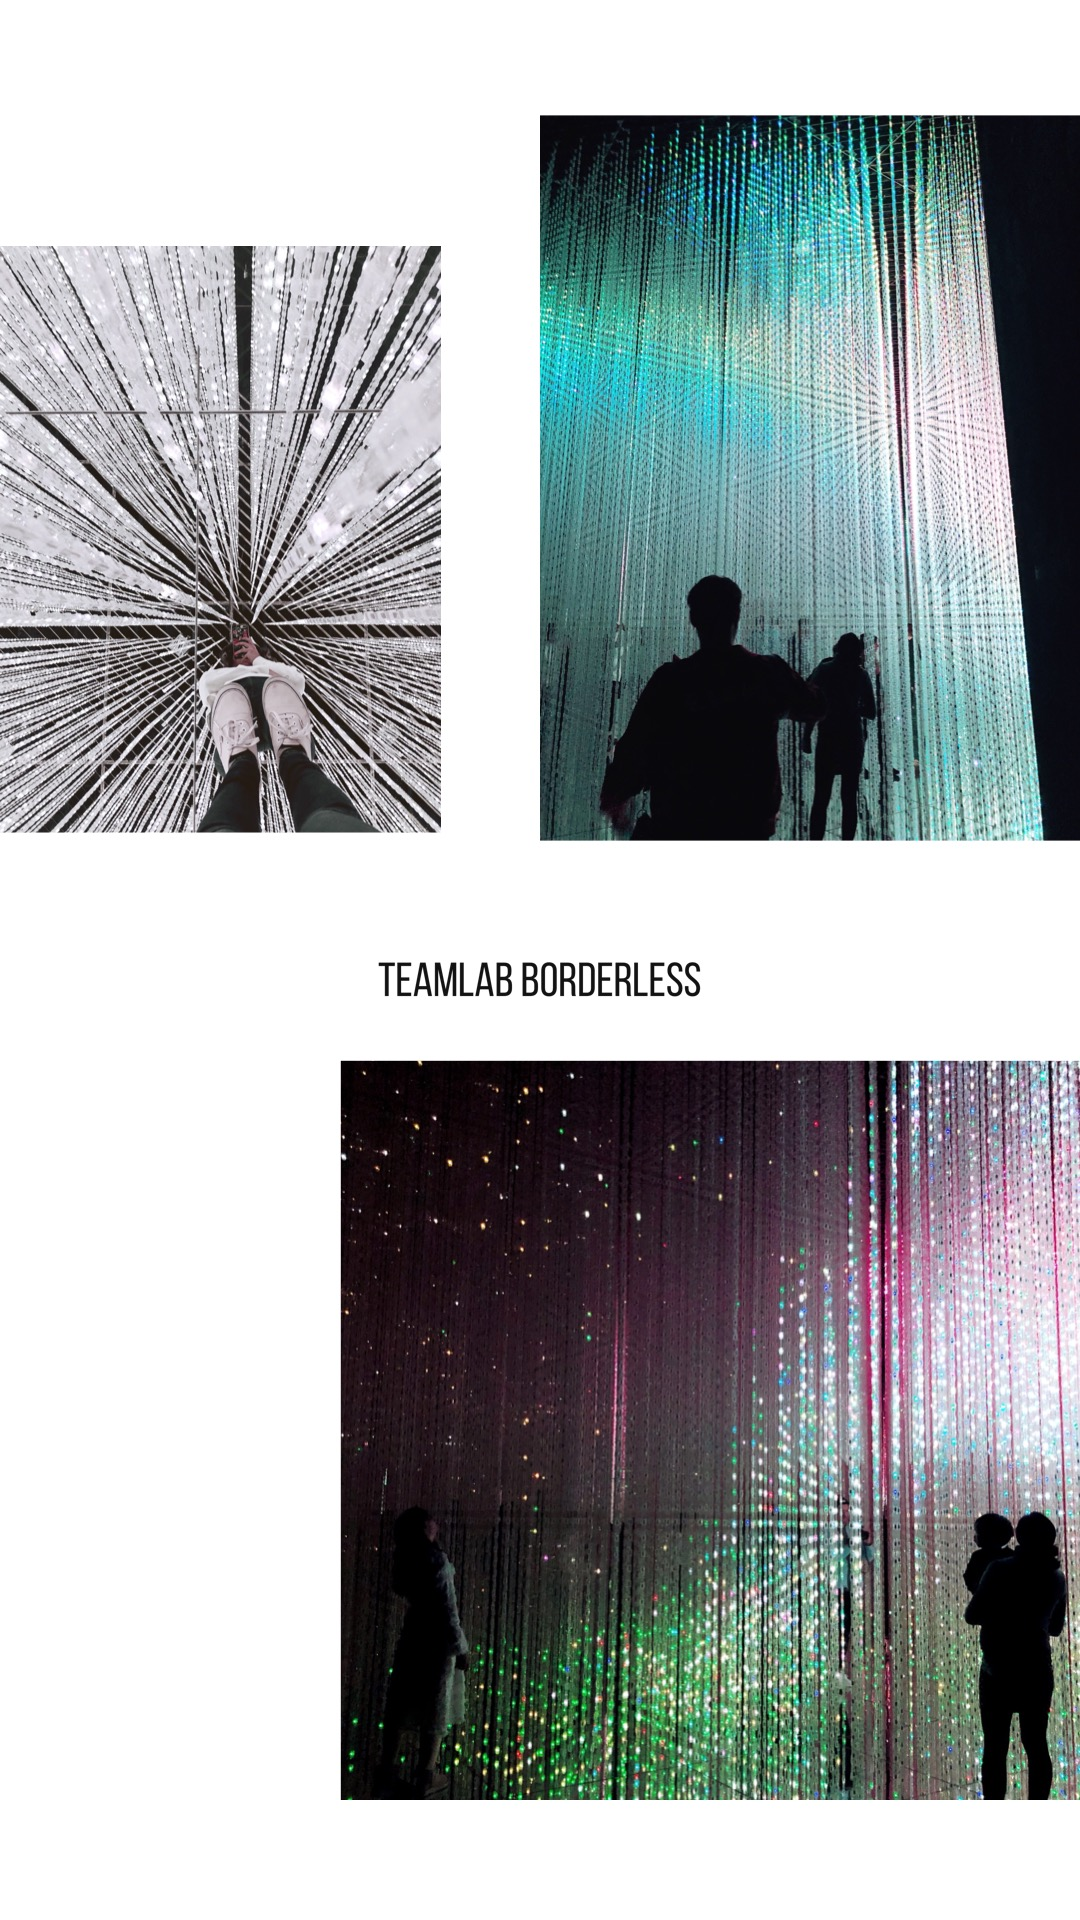 """Teamlab Borderless: I always try to visit museums when traveling and when I saw this on Instagram, I had to go see it for myself! Teamlab is basically a giant art installation using lights, movement and colors. There are multiple different rooms with different themes like flowers, crystal rain, waves, light show, and more. The objects are projected by light which moves and changes frequently. That means if you leave one room and return later, the room could be completely different! Some of the installations are interactive so if you """"touch"""" the projected object, it will """"react"""" to your movements. There were also obstacles, a bounce house and a slide which was fun to participate in. If you're sensitive to light, I wouldn't recommend this museum but personally, I thought it was a super cool experience! PS the photos really do not do this place justice."""